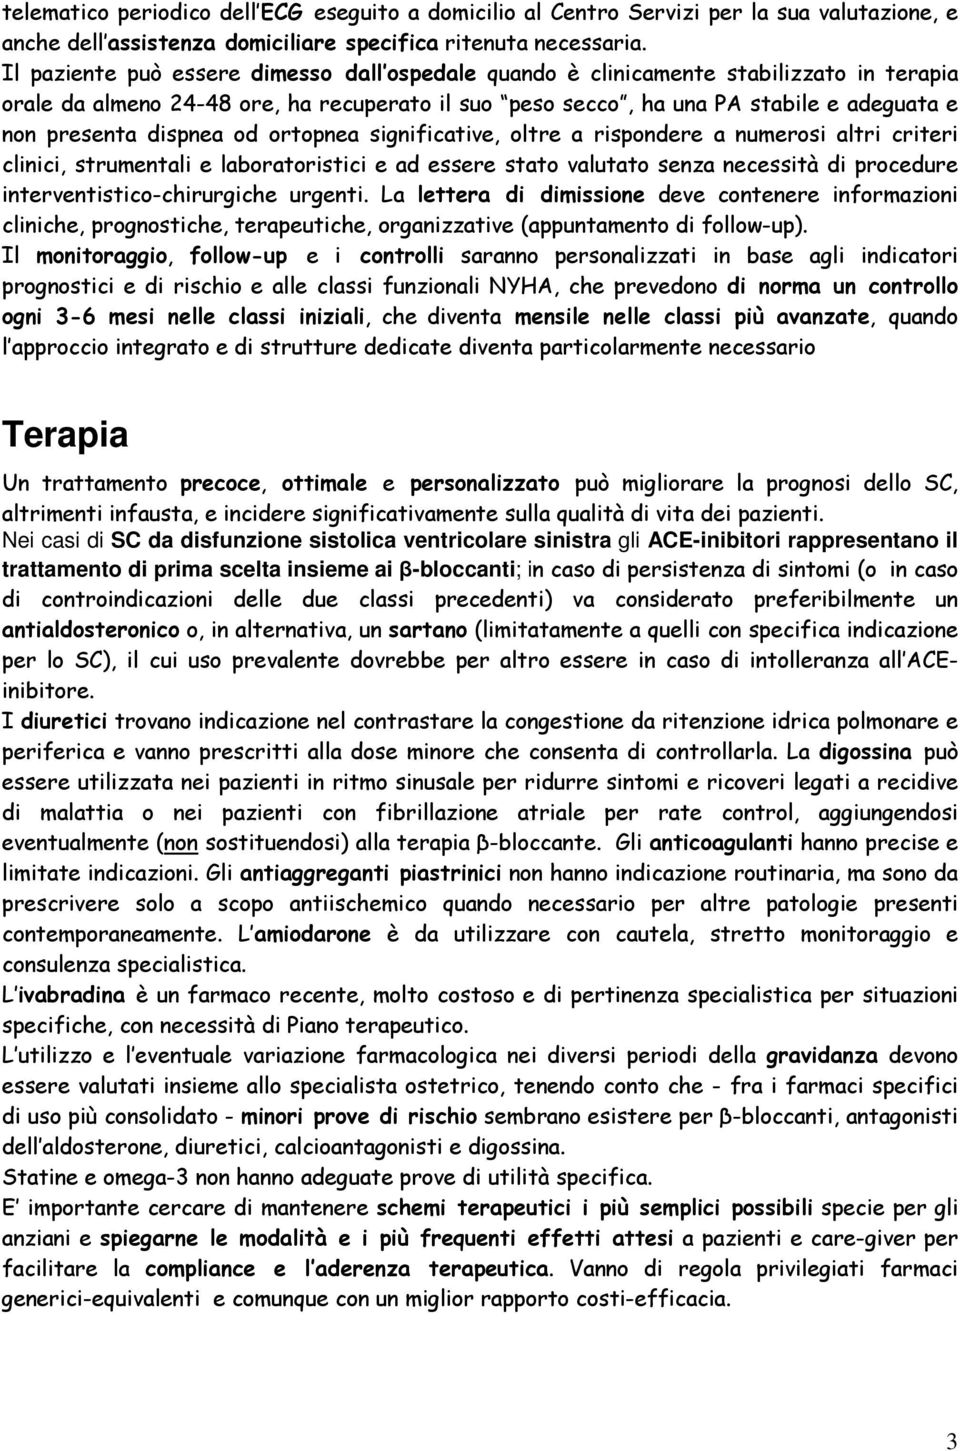 La regola del sospetto the rule of suspicion - 2 part 1